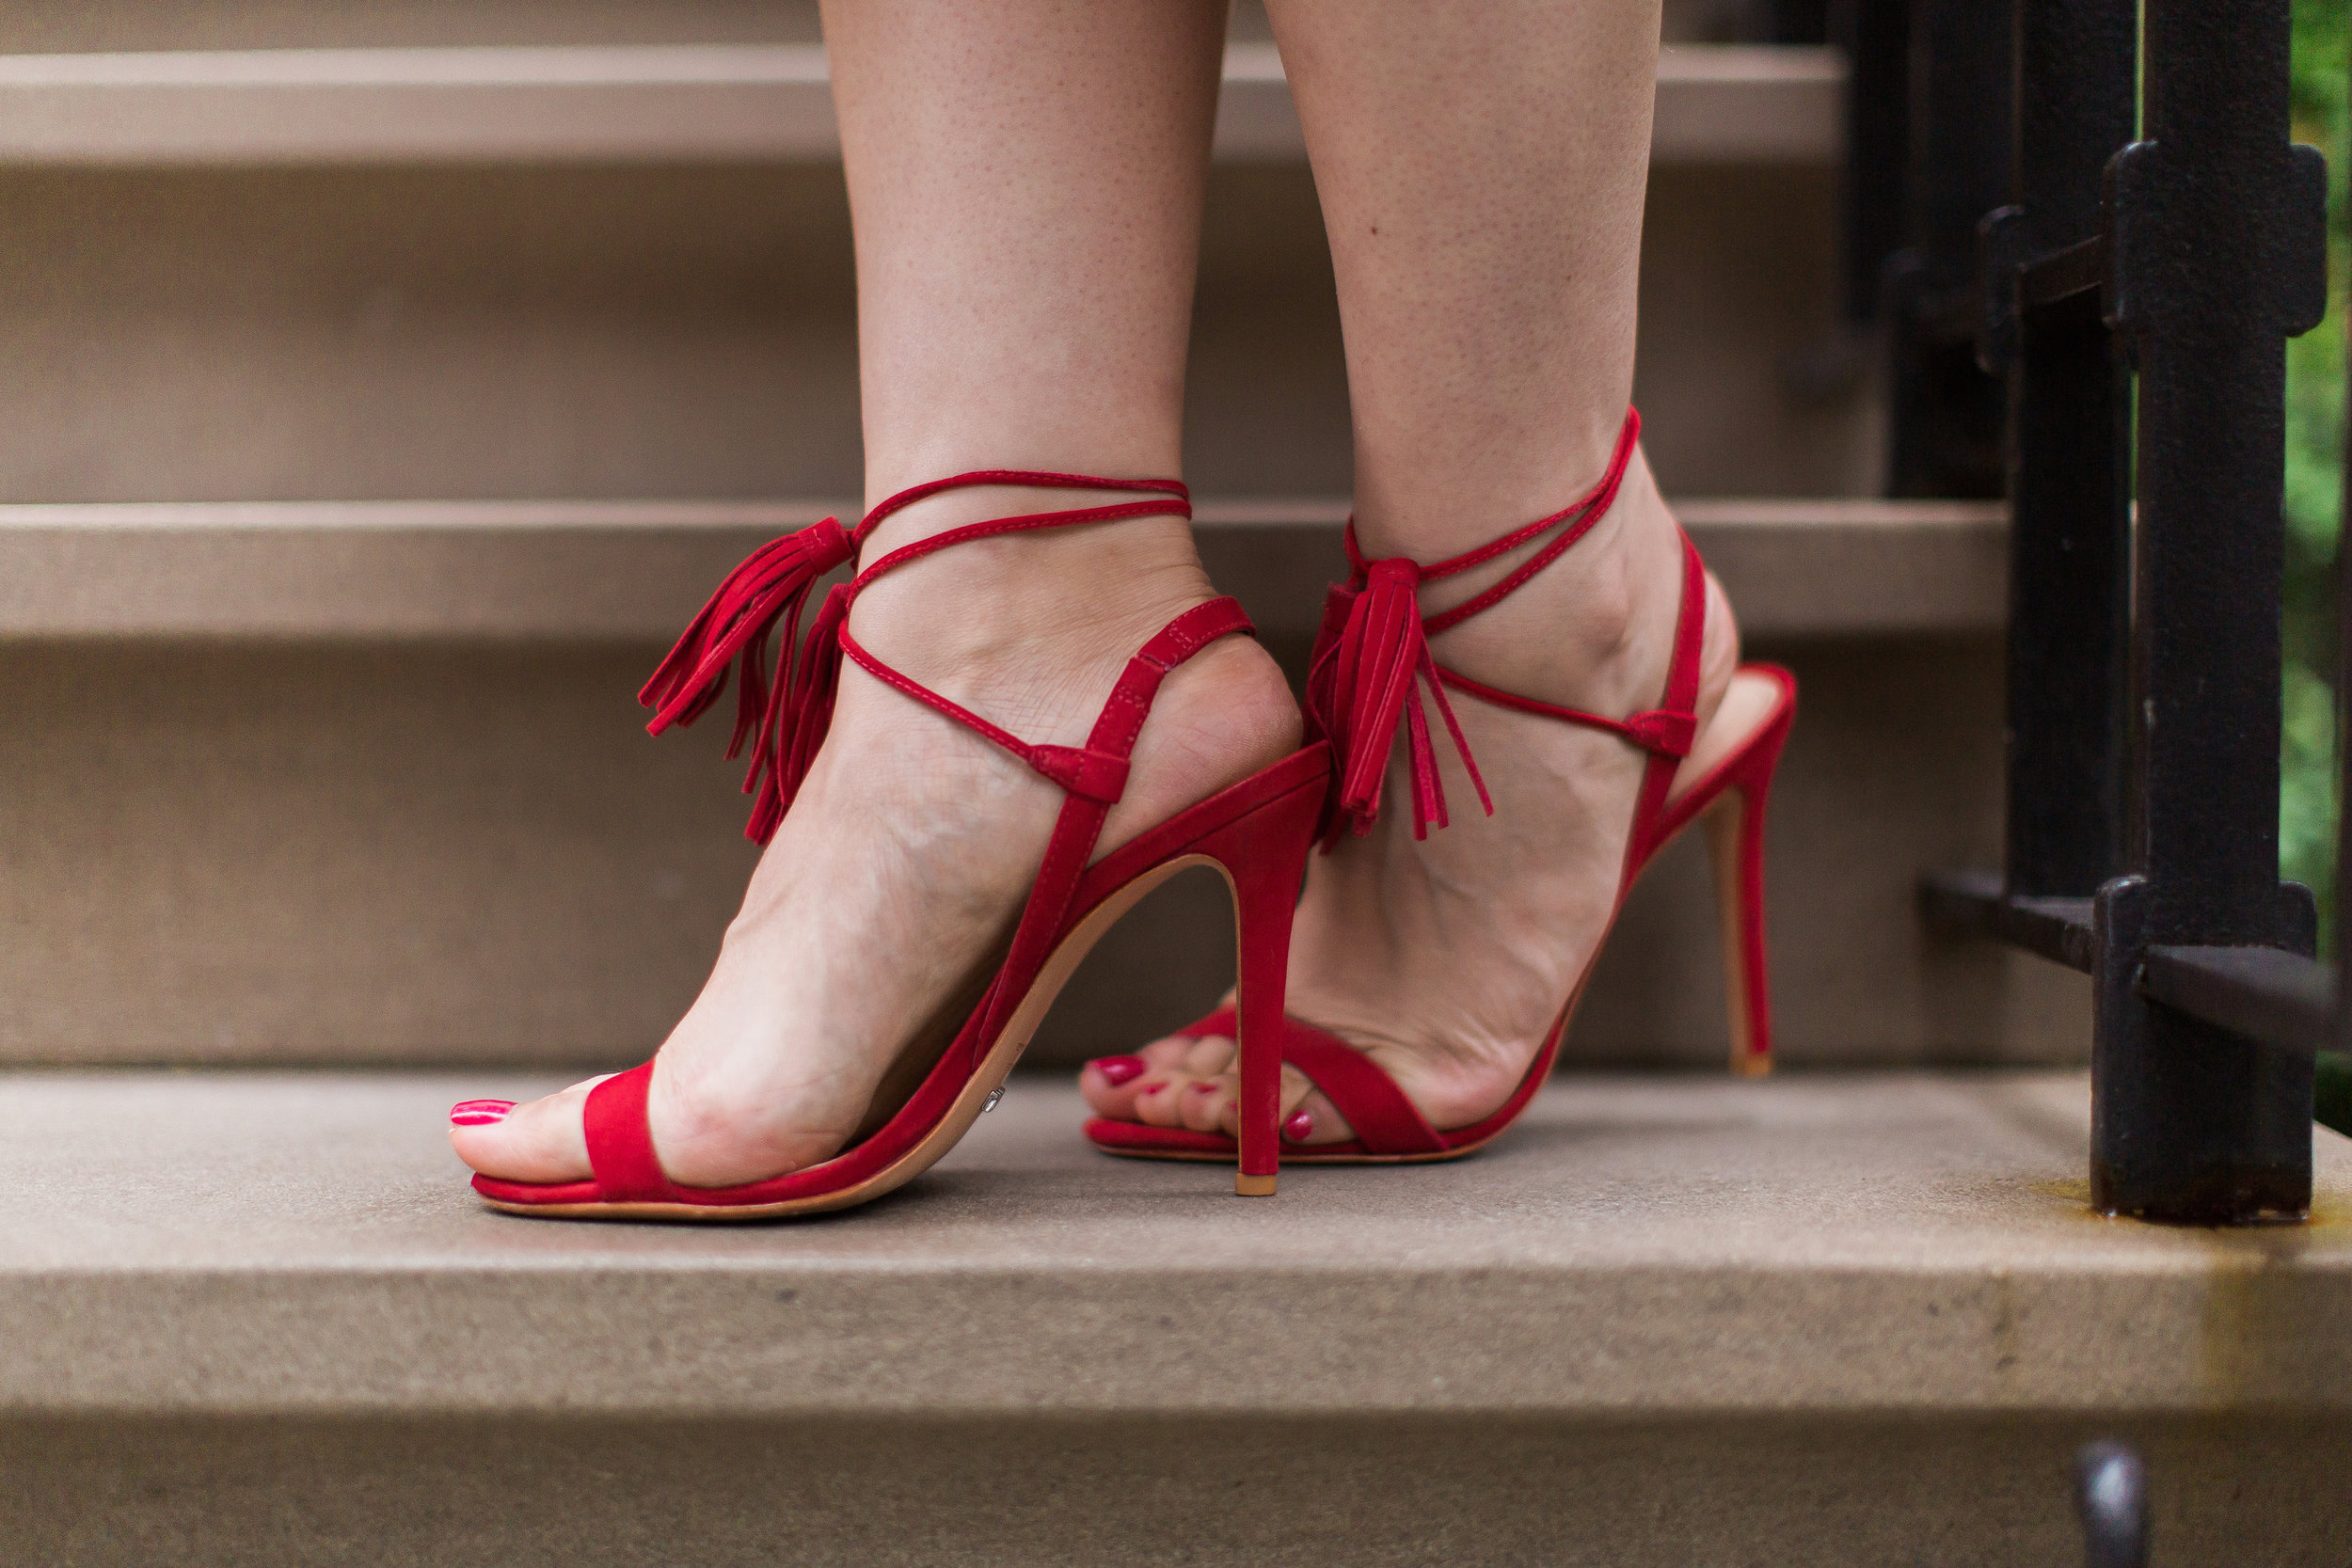 This pair of heels by Schutz was purchased on Shopbop.com. Photo by  Caitee Smith .